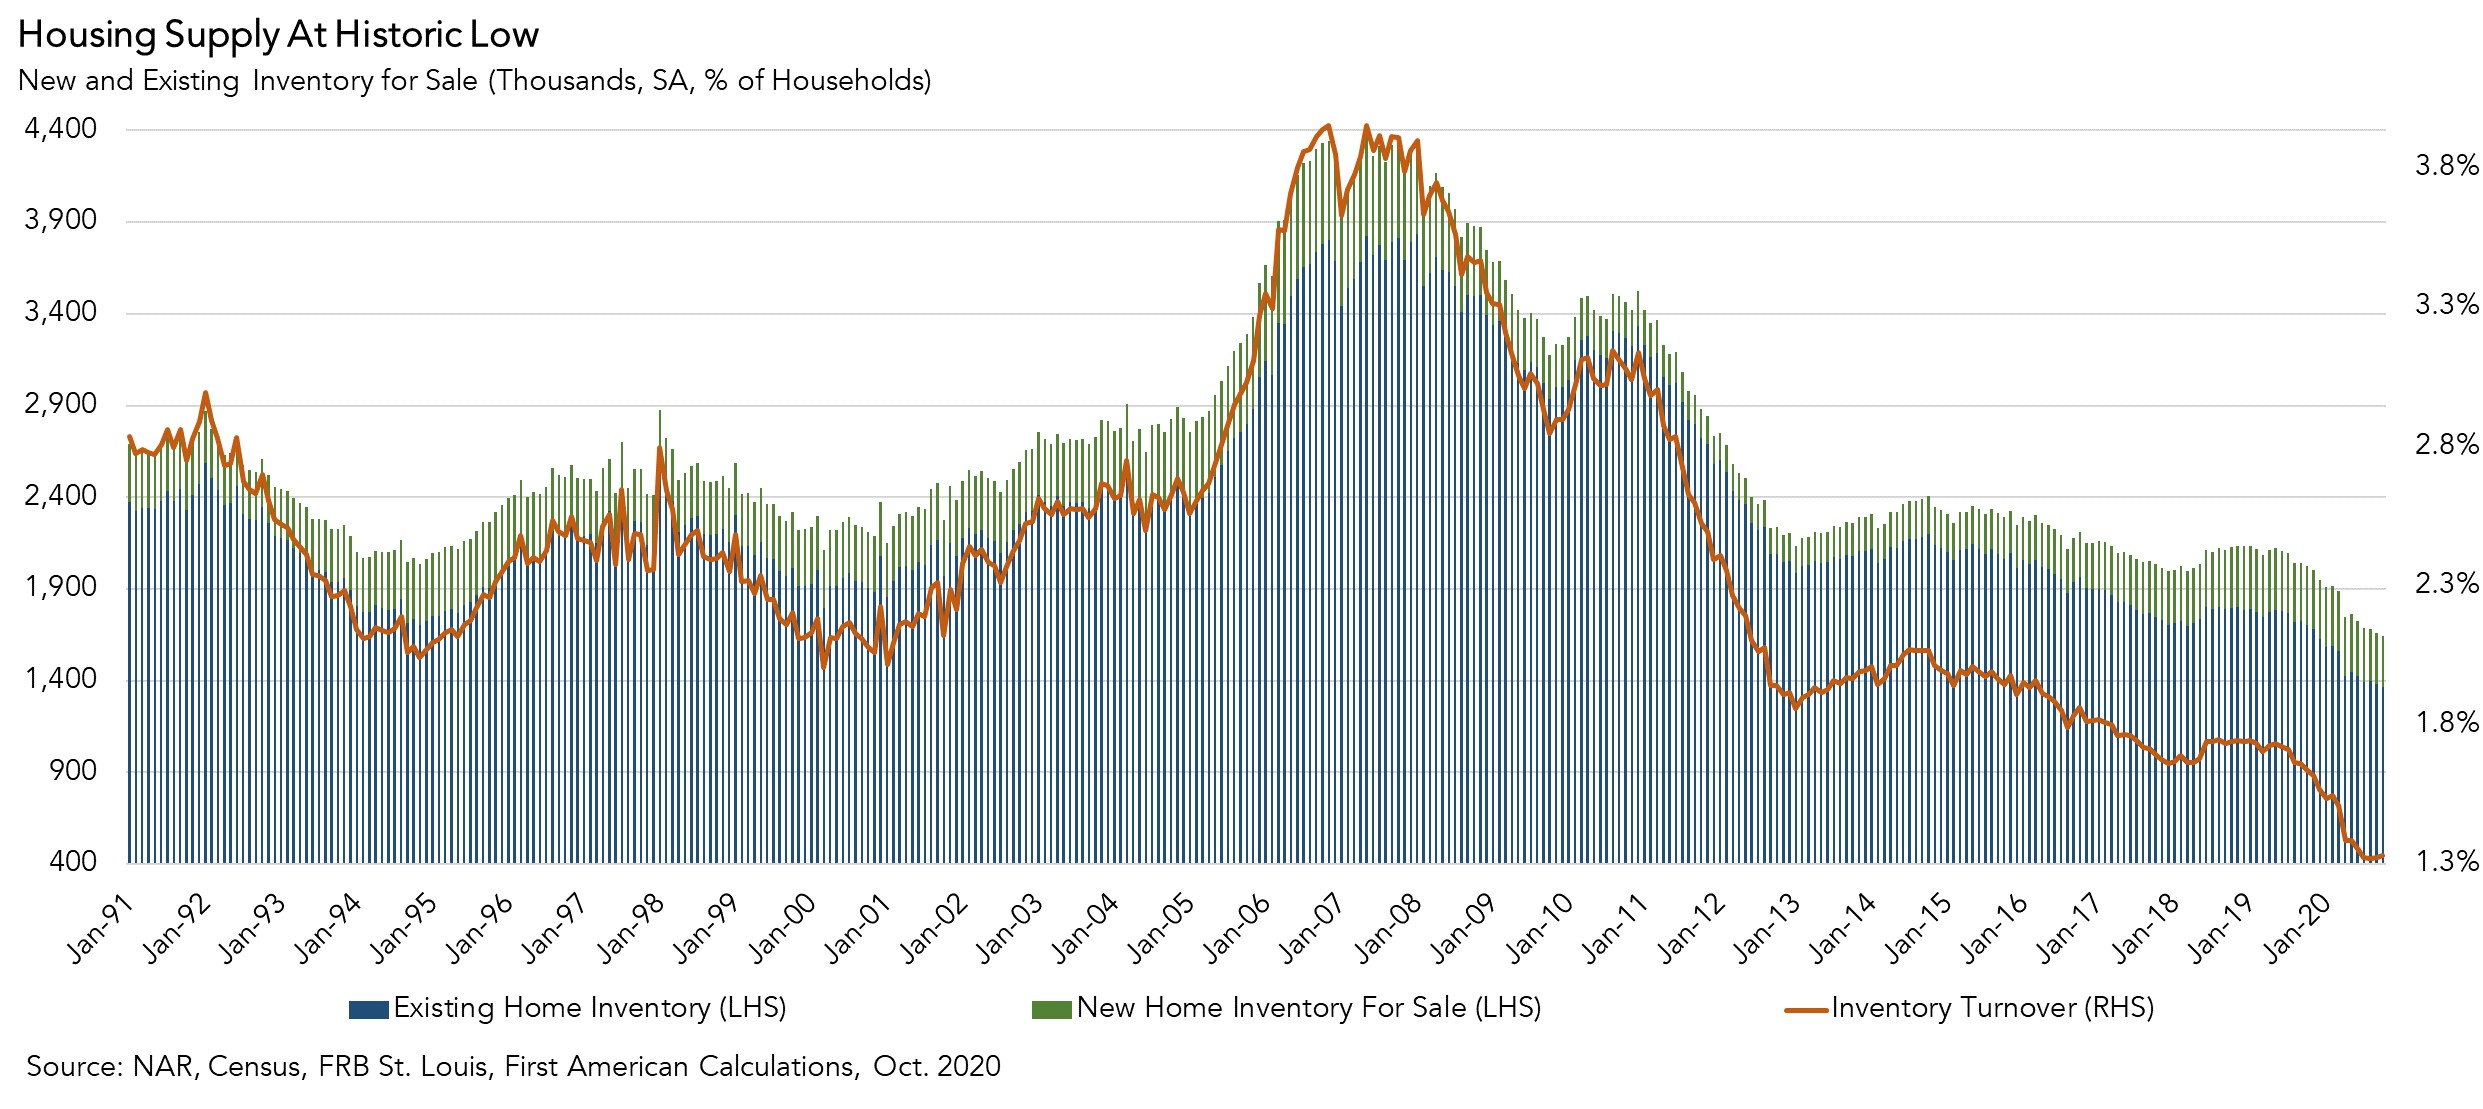 Housing Supply at Historic Low Chart Oct 2020